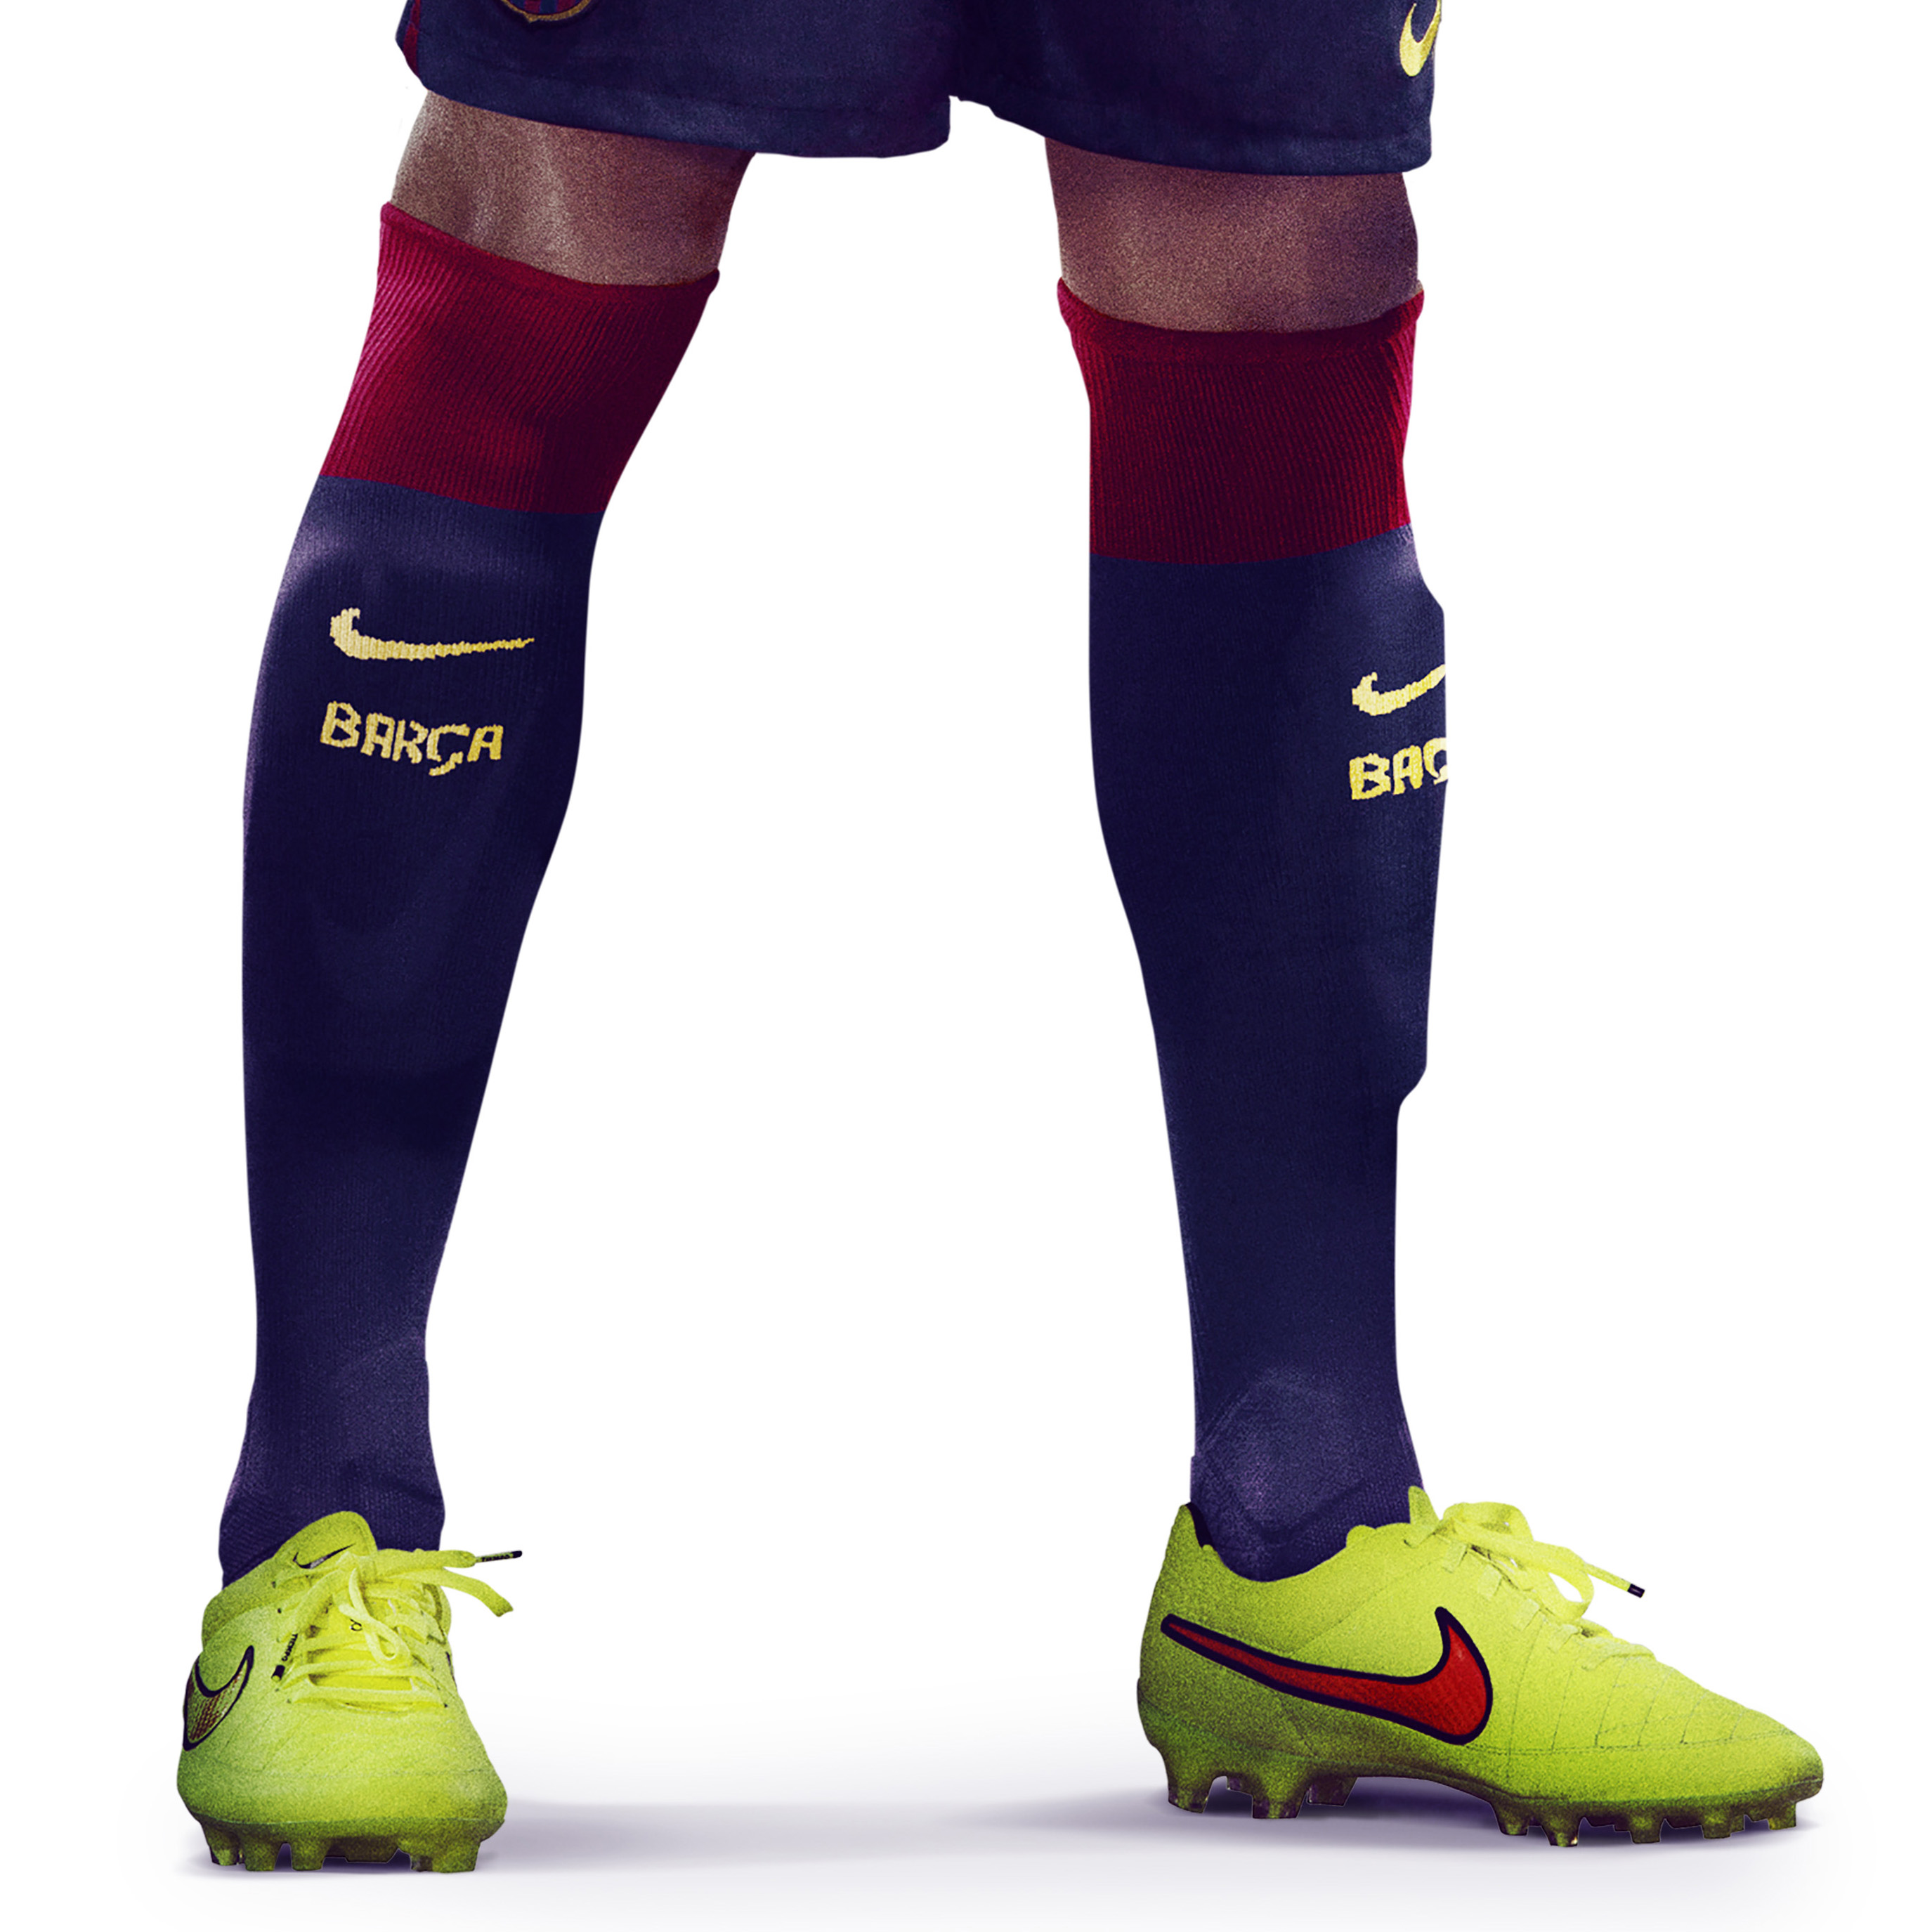 Barcelona Home Socks 2014/15 Blue